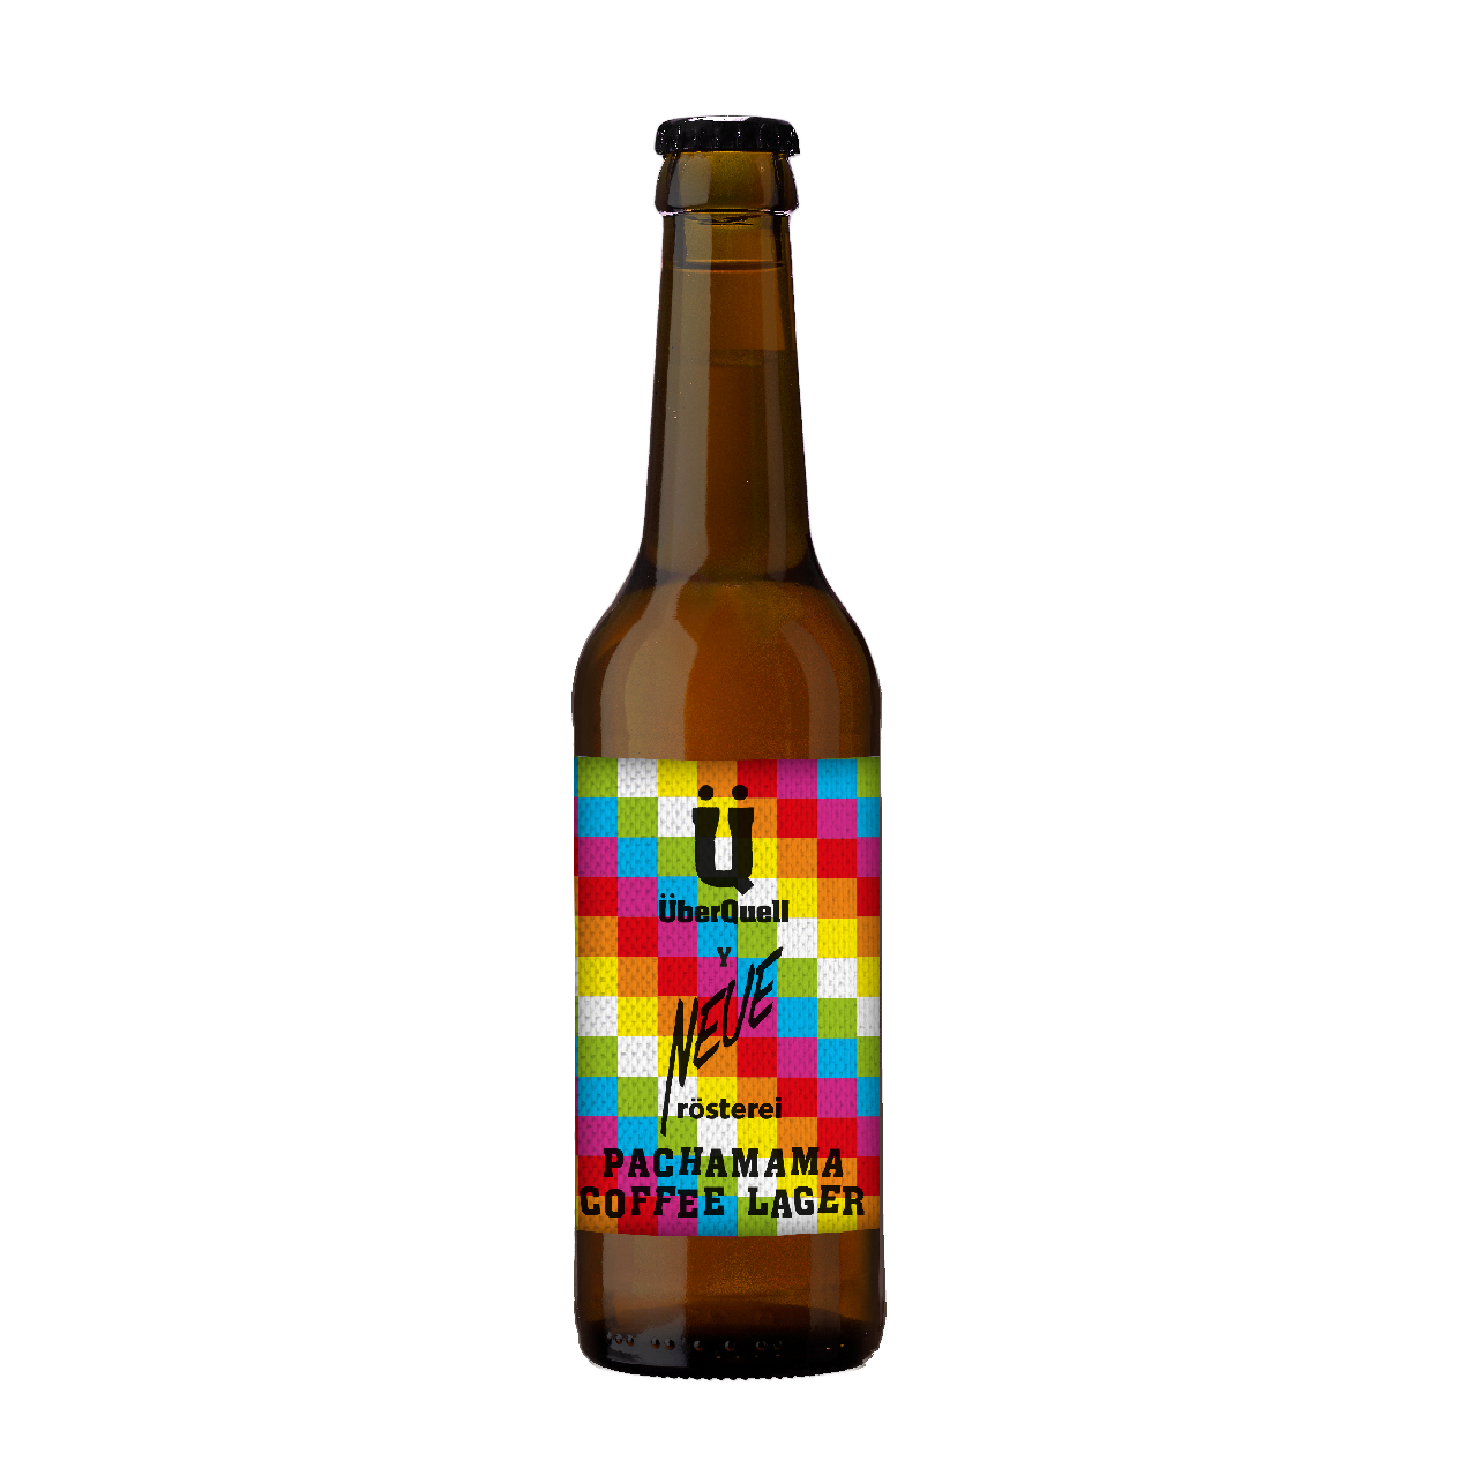 Pachamama - Coffee Lager